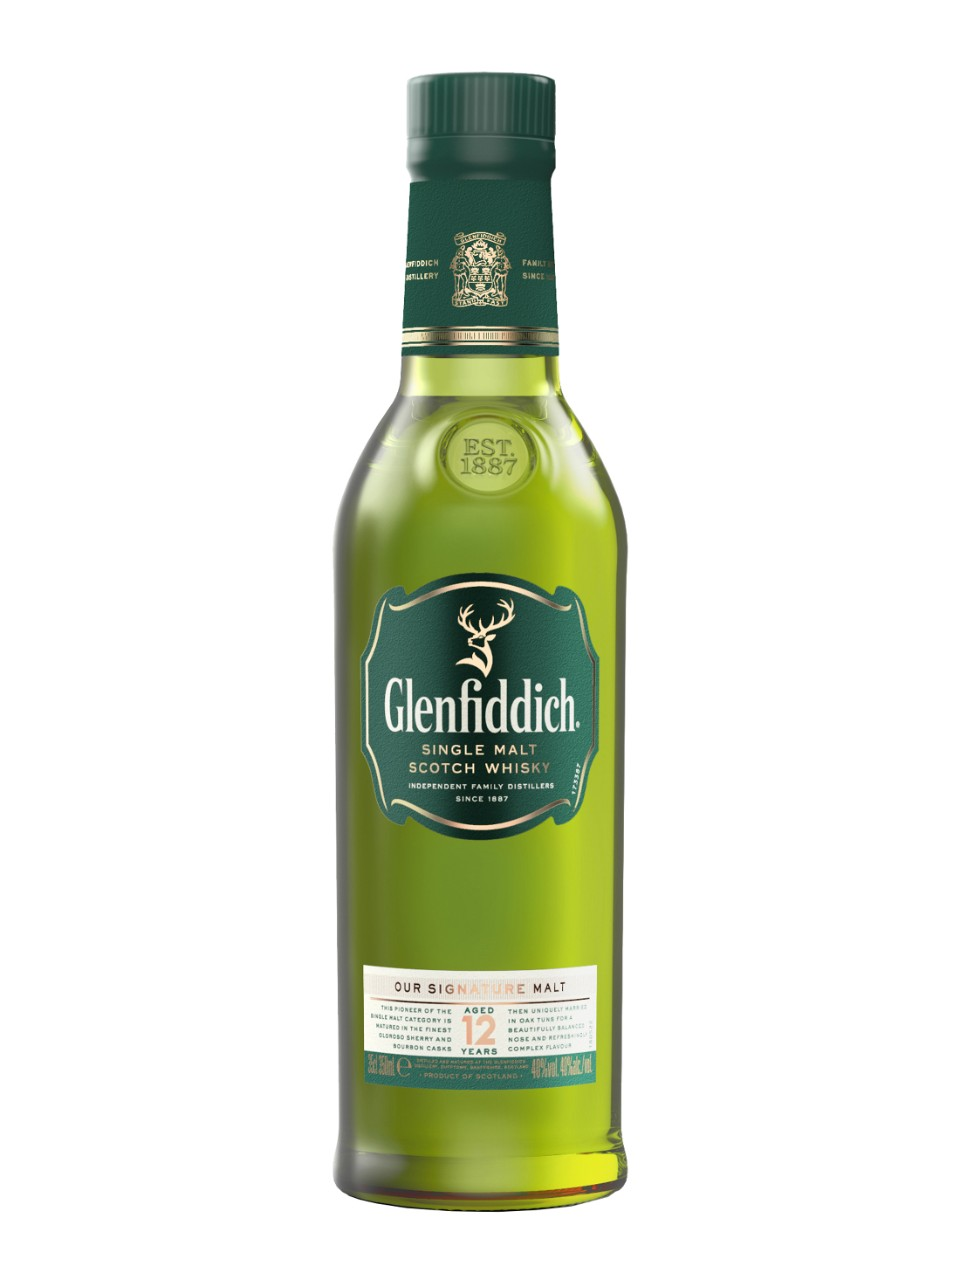 Glenfiddich Single Malt 12 Year Old Scotch Whisky from LCBO